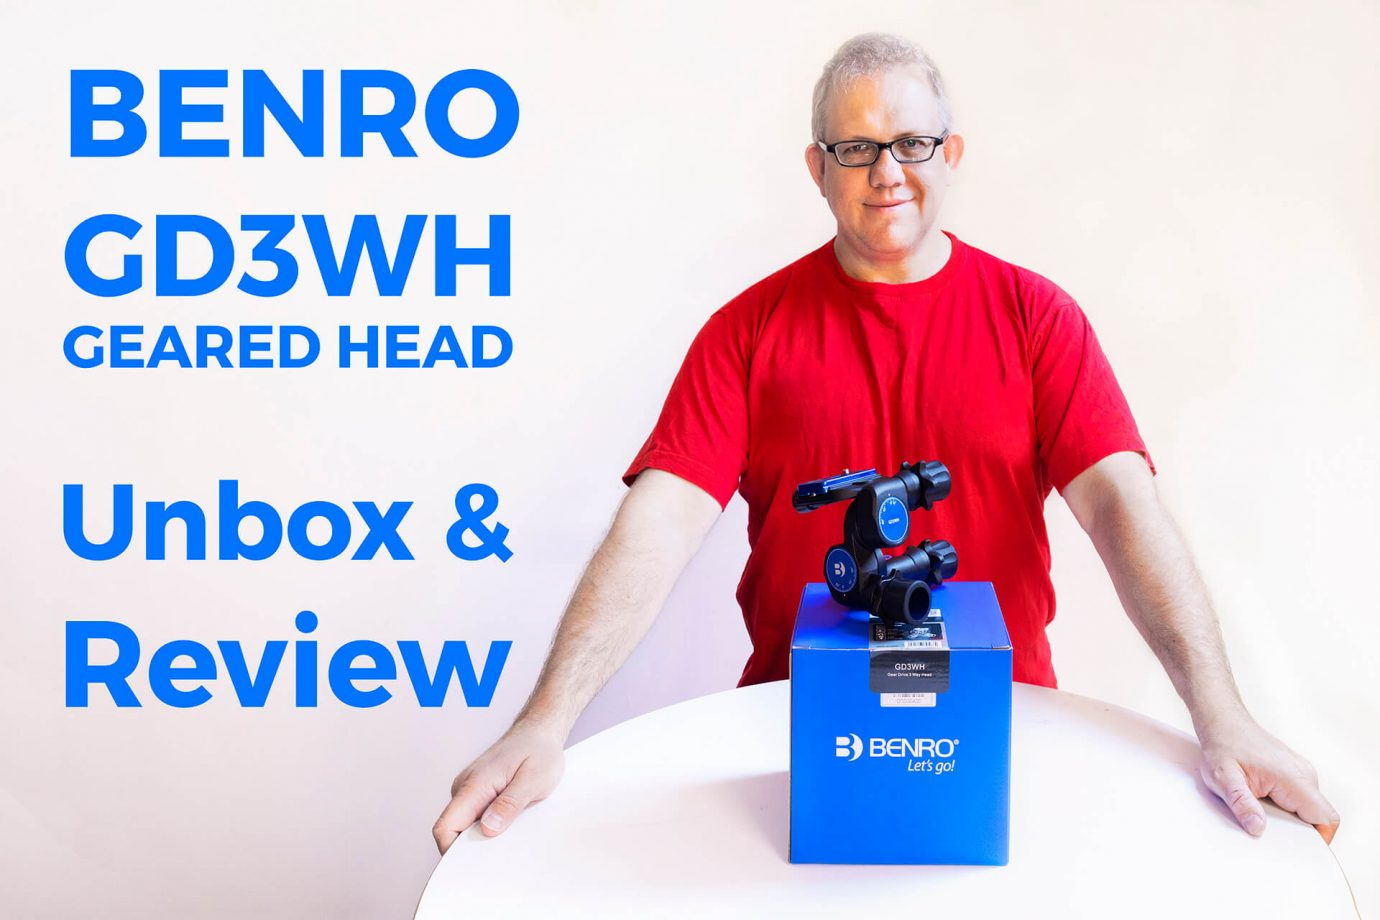 Benro GD3WH Geared Head - Unbox & Review